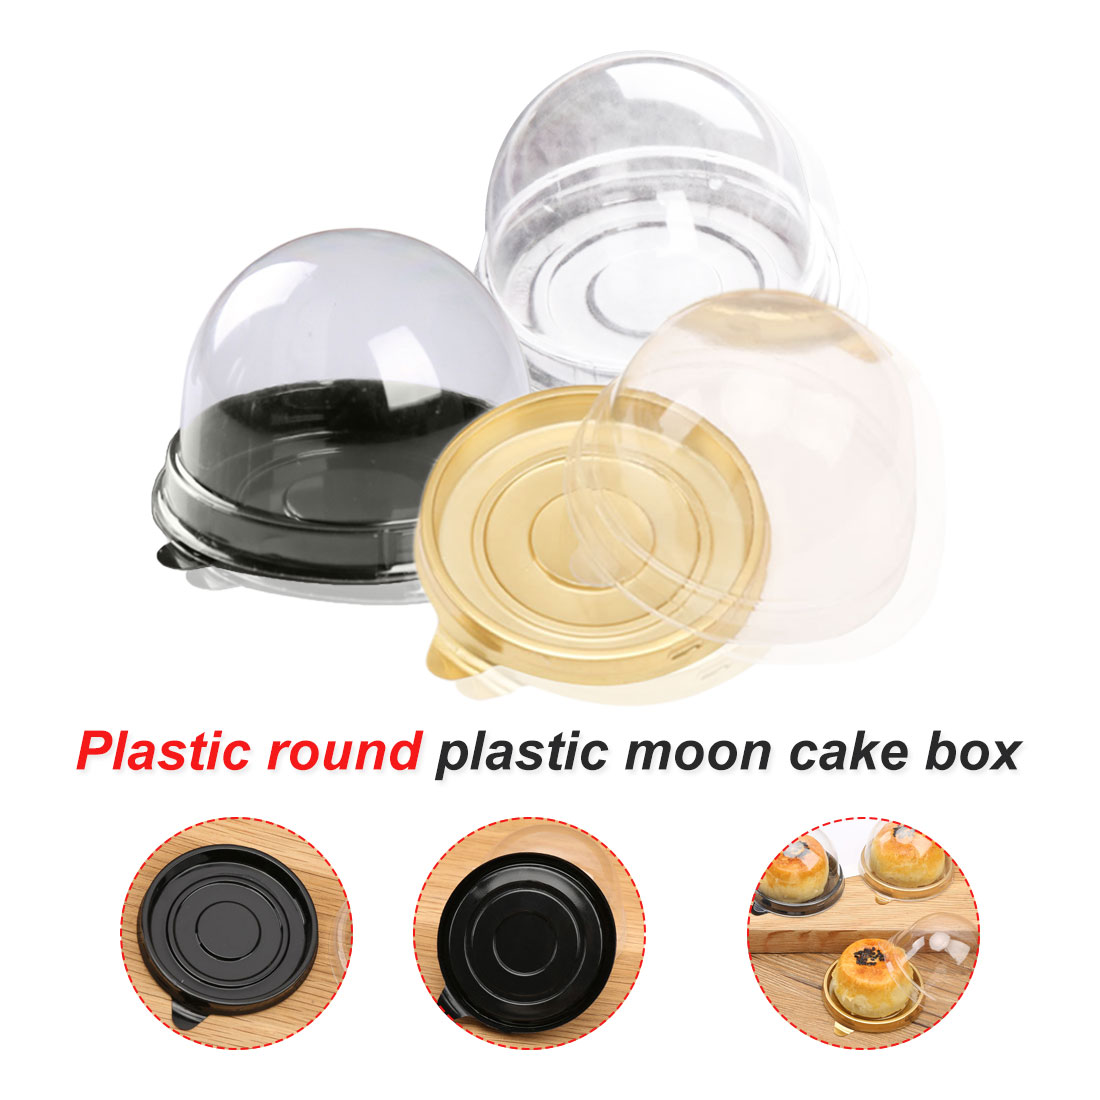 50pcs Plastic Cupcake Packaging Box Cake Dome Containers Wedding Party Favor Boxes Supplies